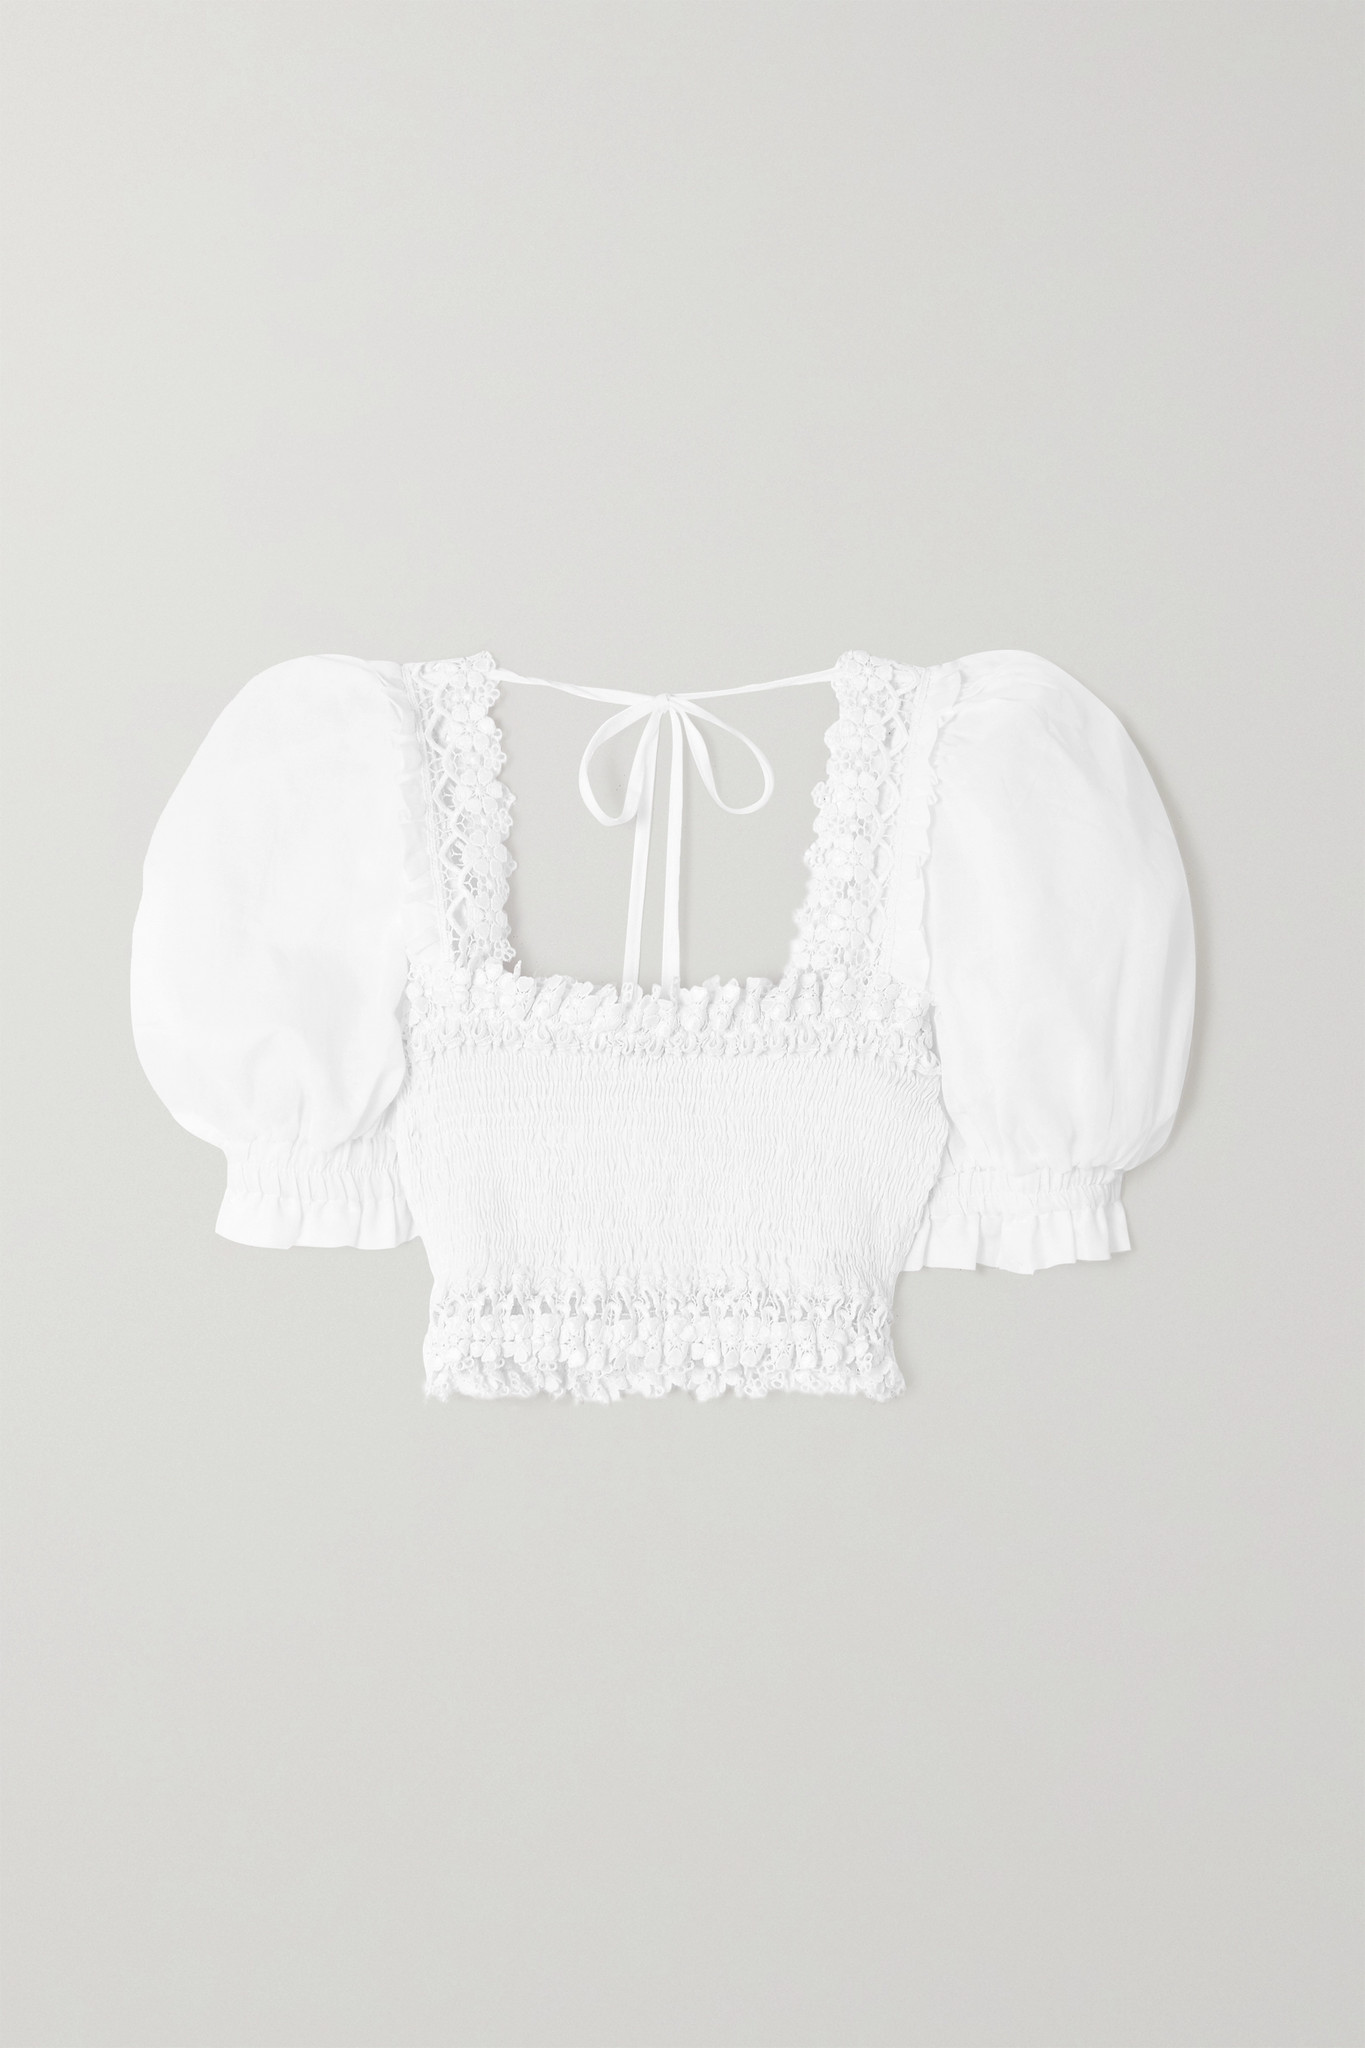 CHARO RUIZ - Judy Cropped Crochet-trimmed Shirred Cotton-blend Voile Top - White - large